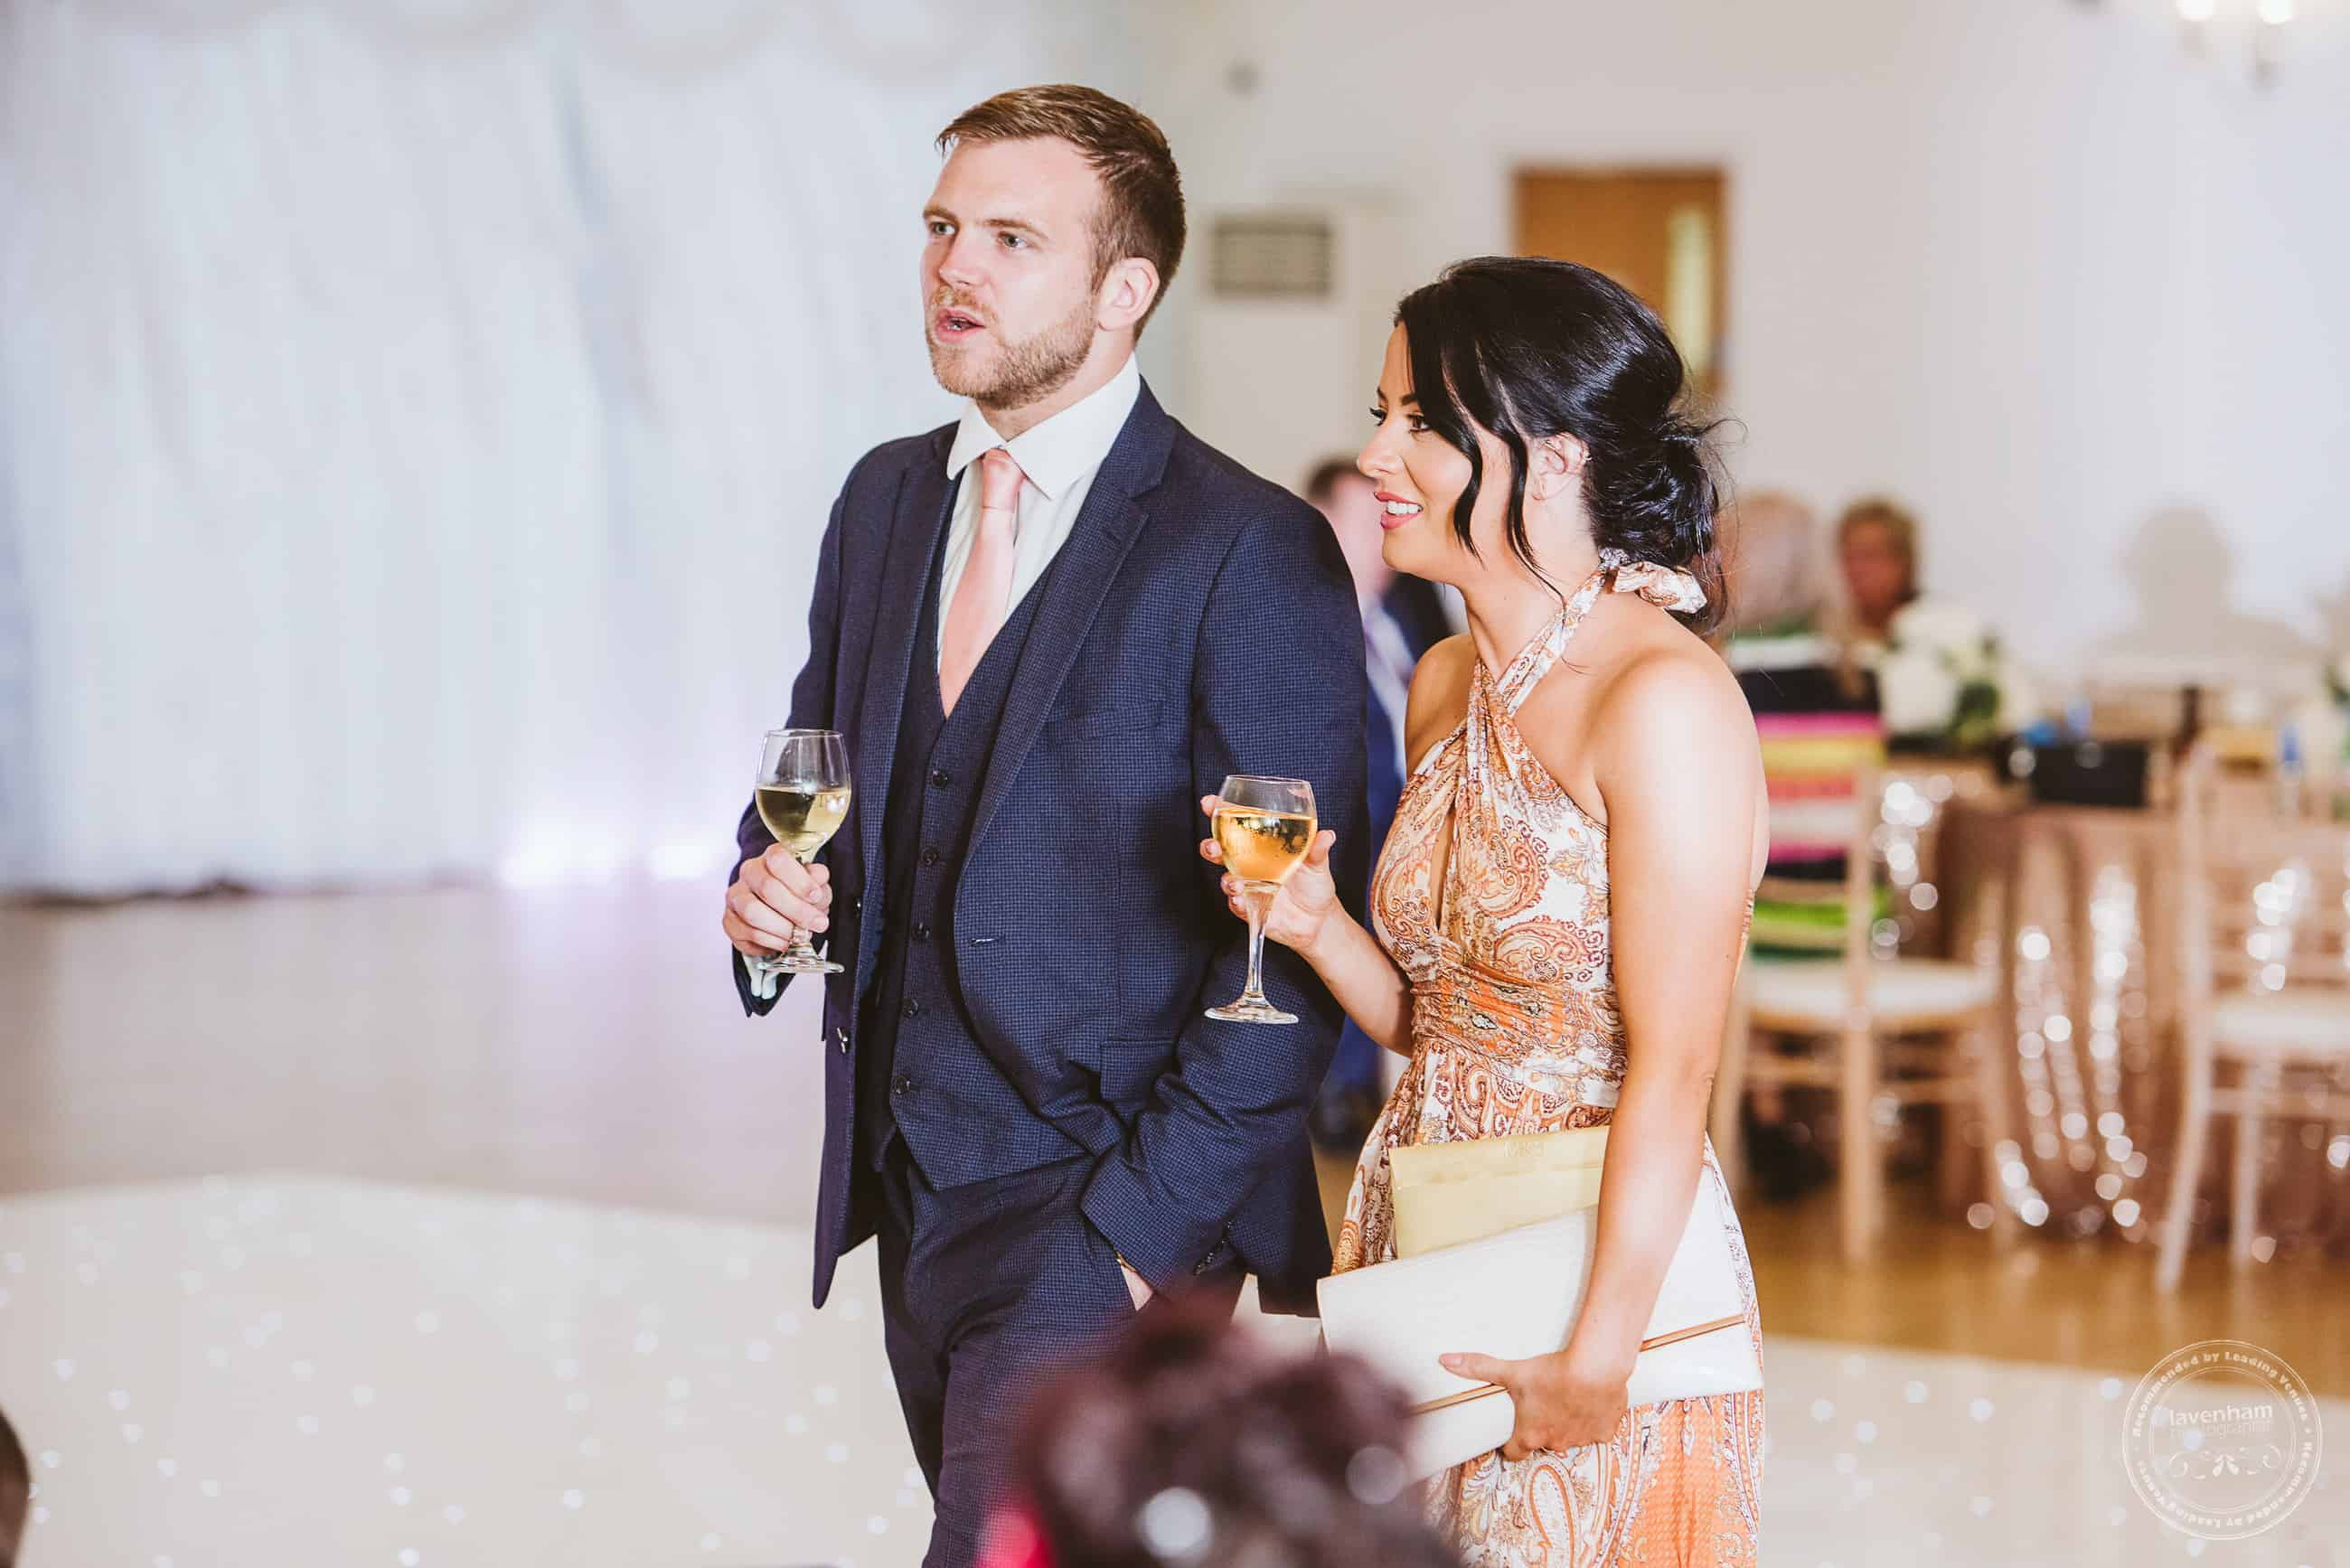 280619 Hylands House Essex Wedding Photography 0193